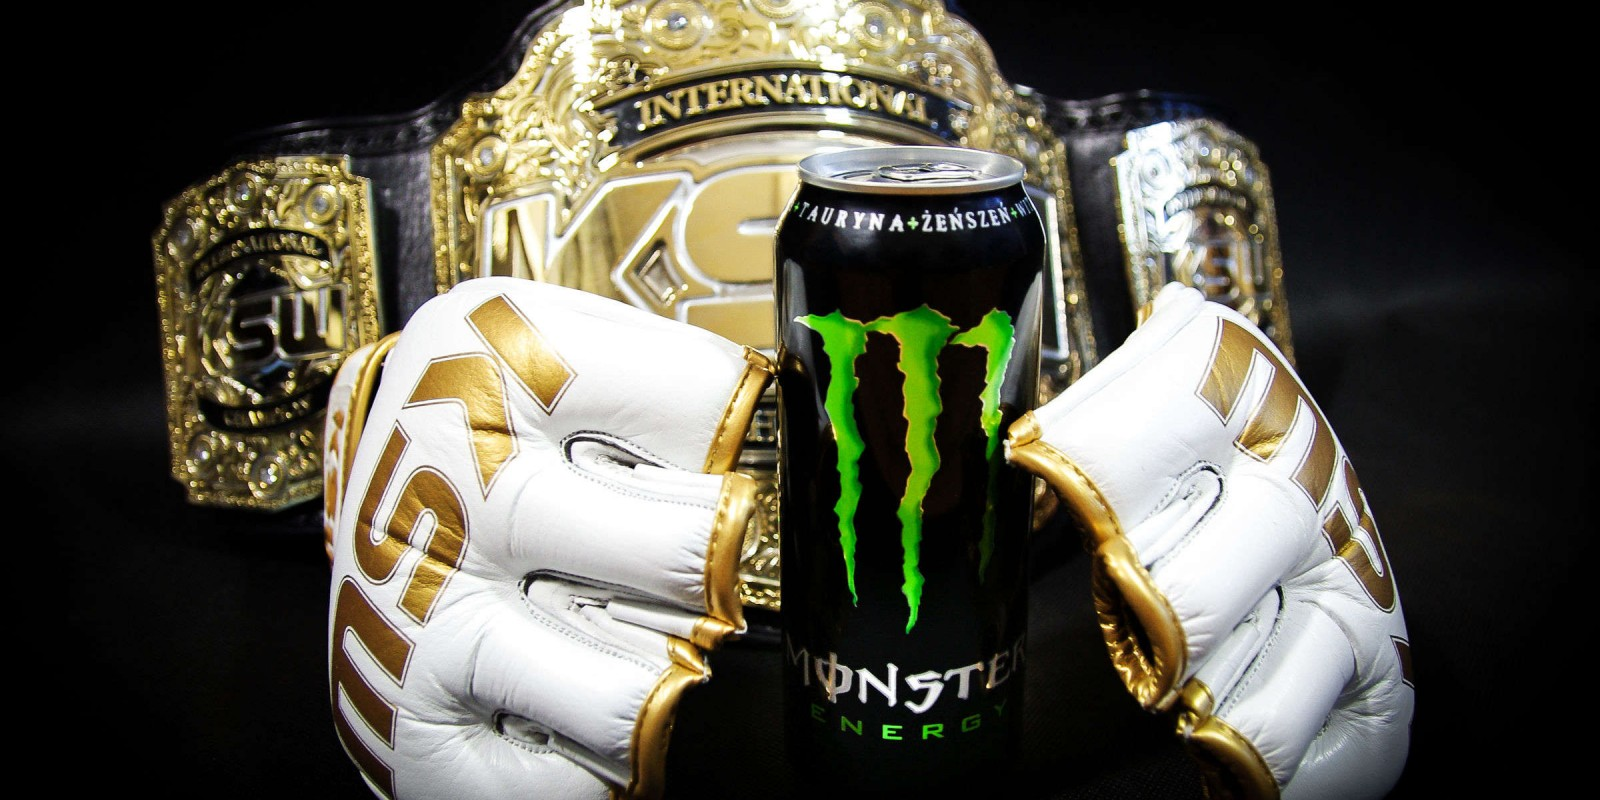 KSW MMA champion belt, gloves and Monster can